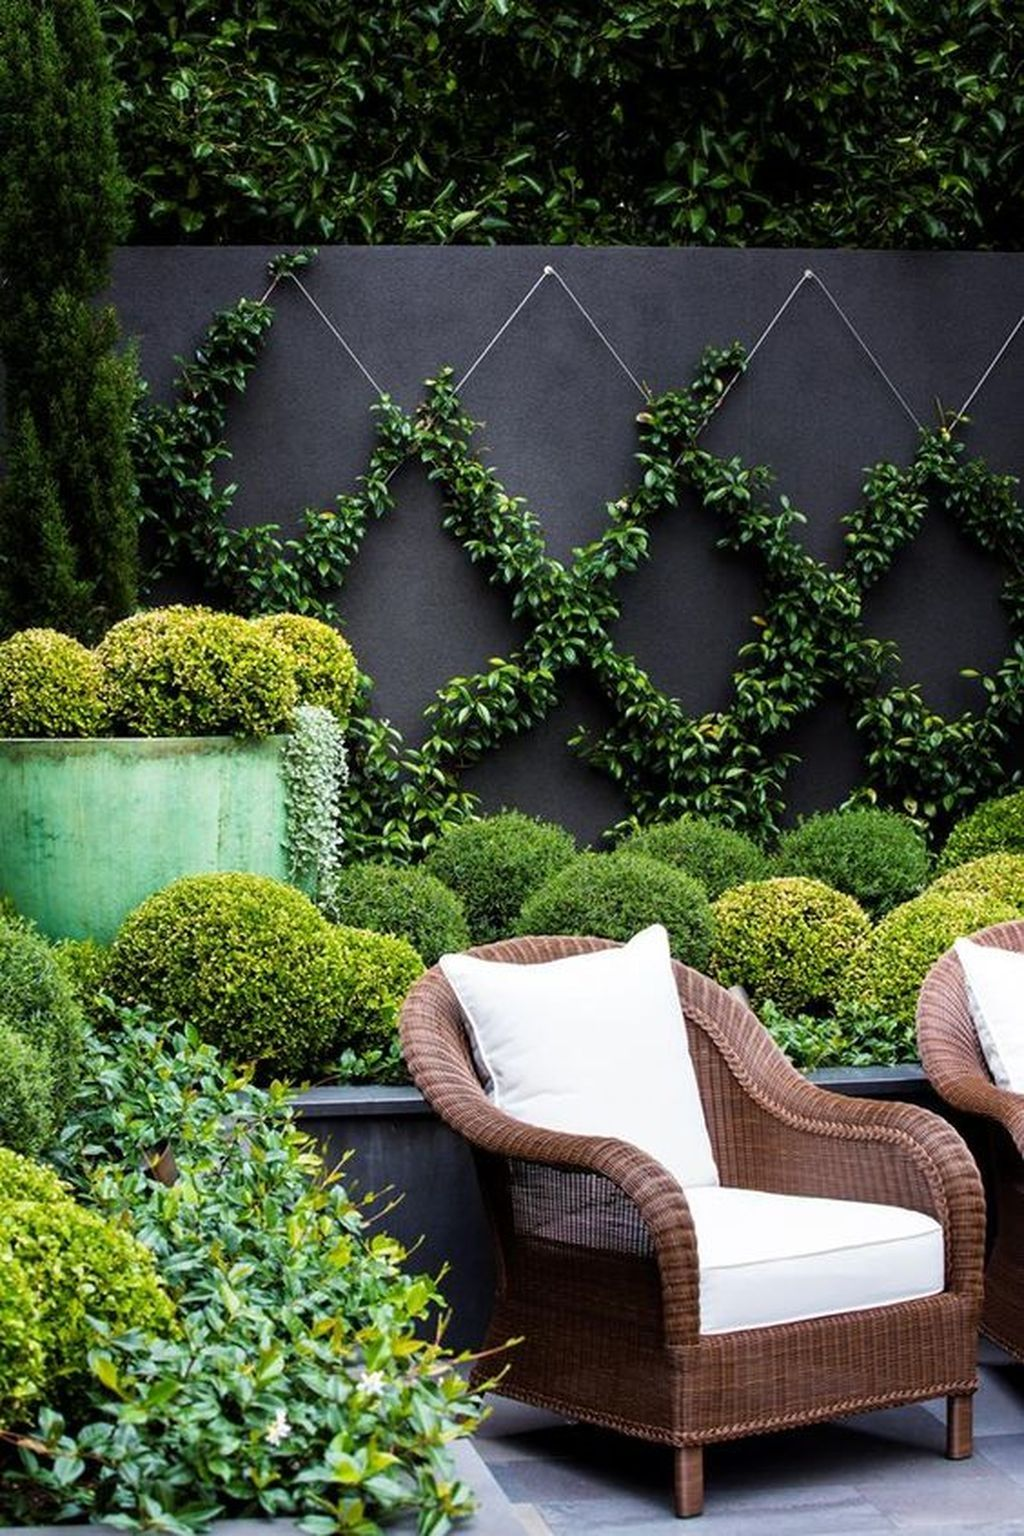 Stunning Living Wall Decor For Indoor And Outdoor 19 Vertical